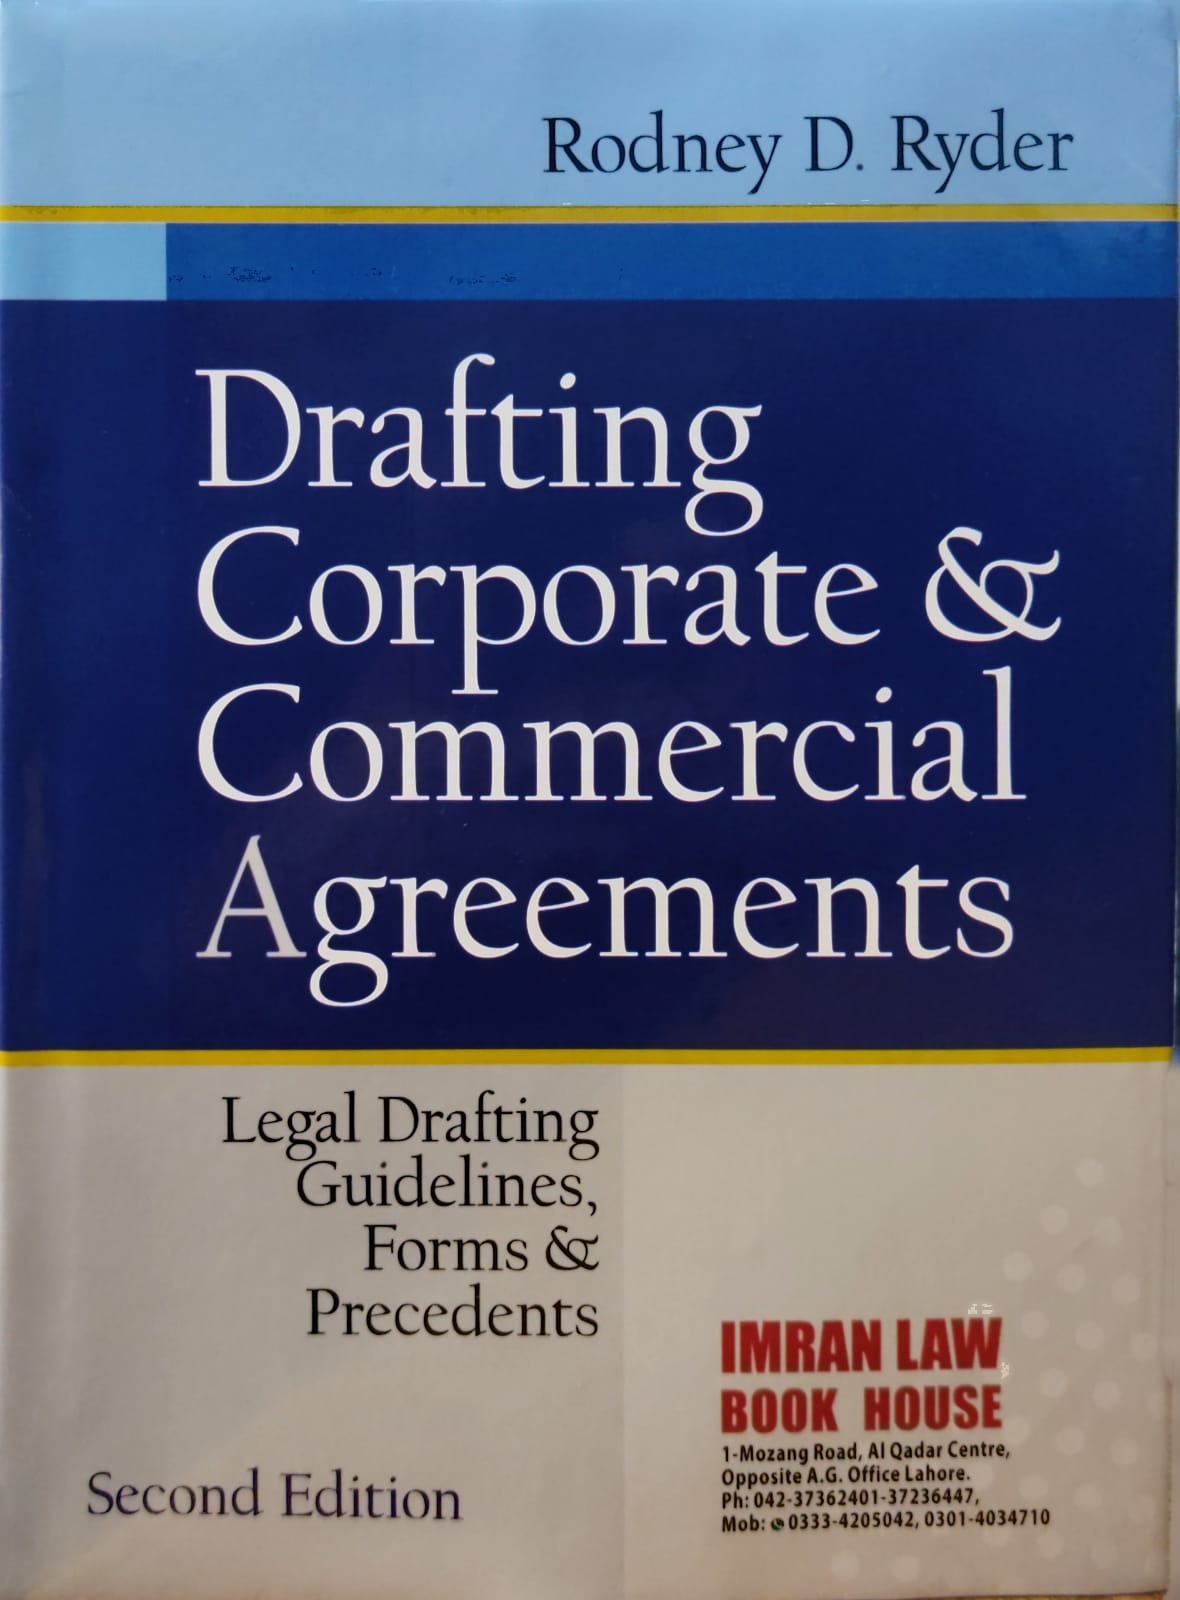 Drafting Corporate & Commercial Agreements